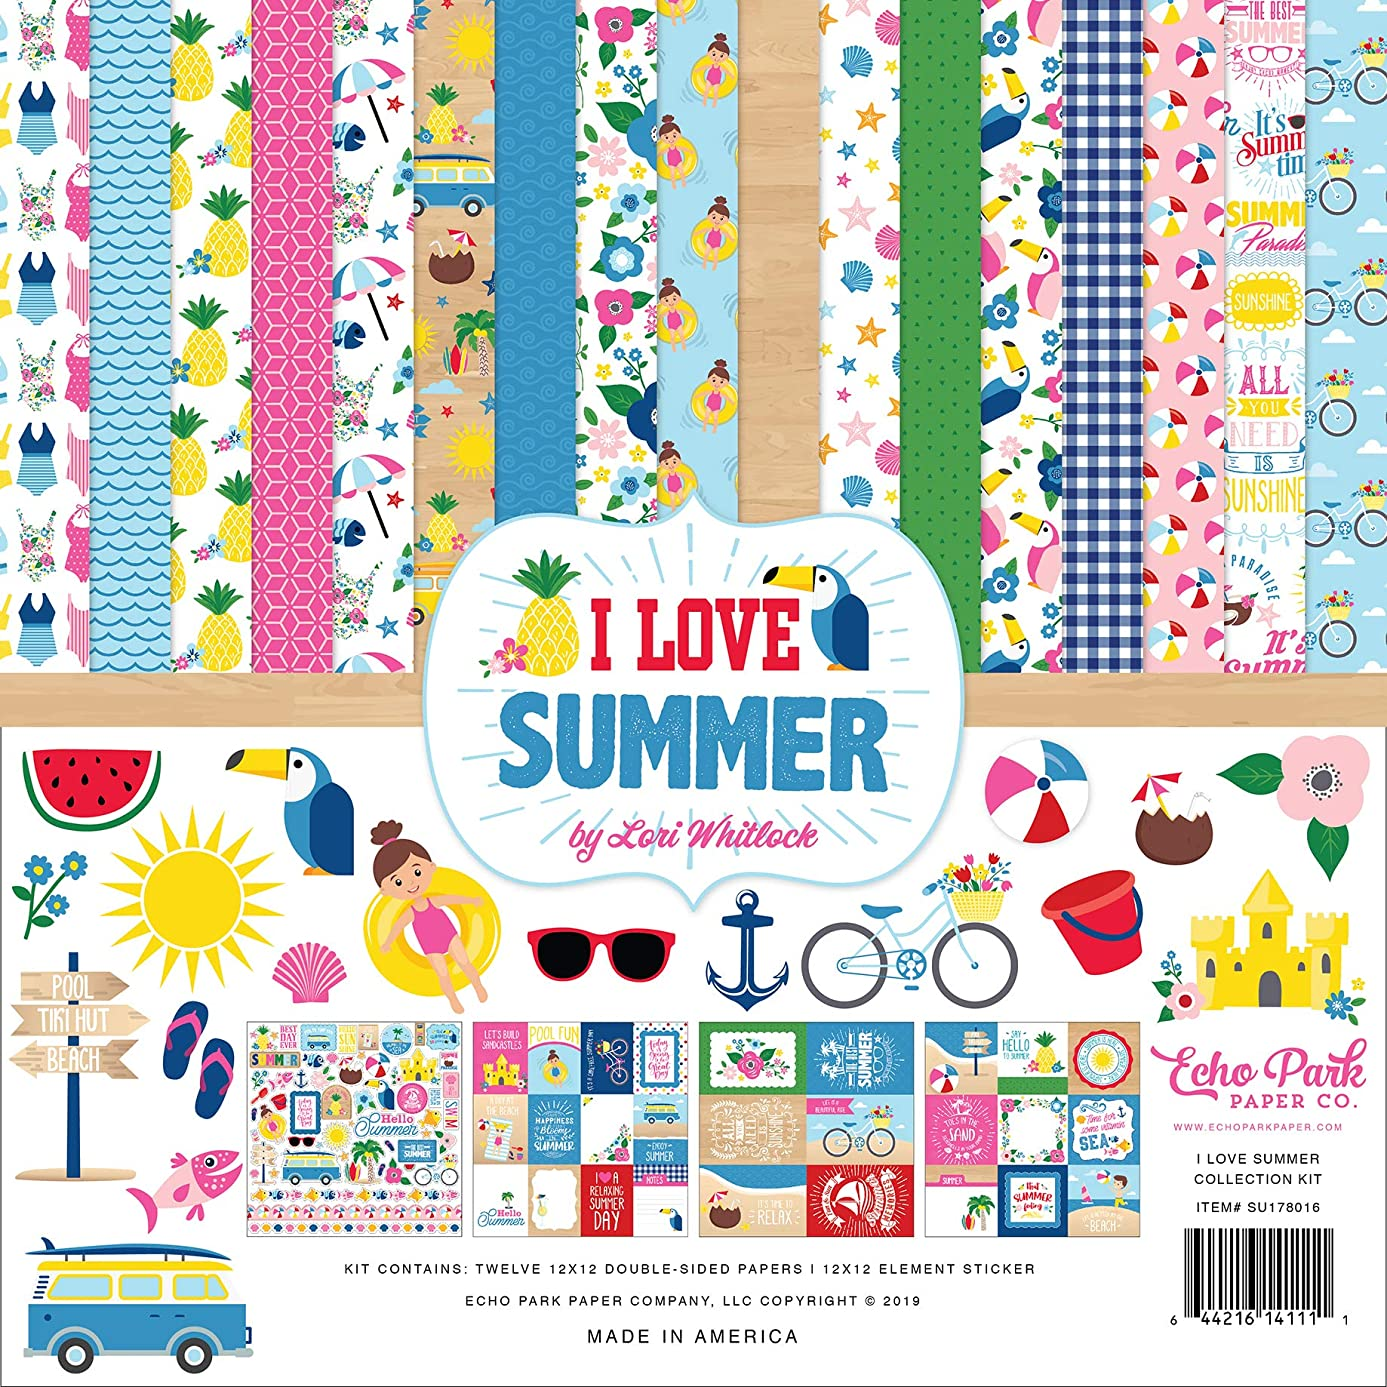 Echo Park Paper Company SU178016 I Love Summer Collection Kit Paper Pink, Teal, Green, Yellow, Blue, red